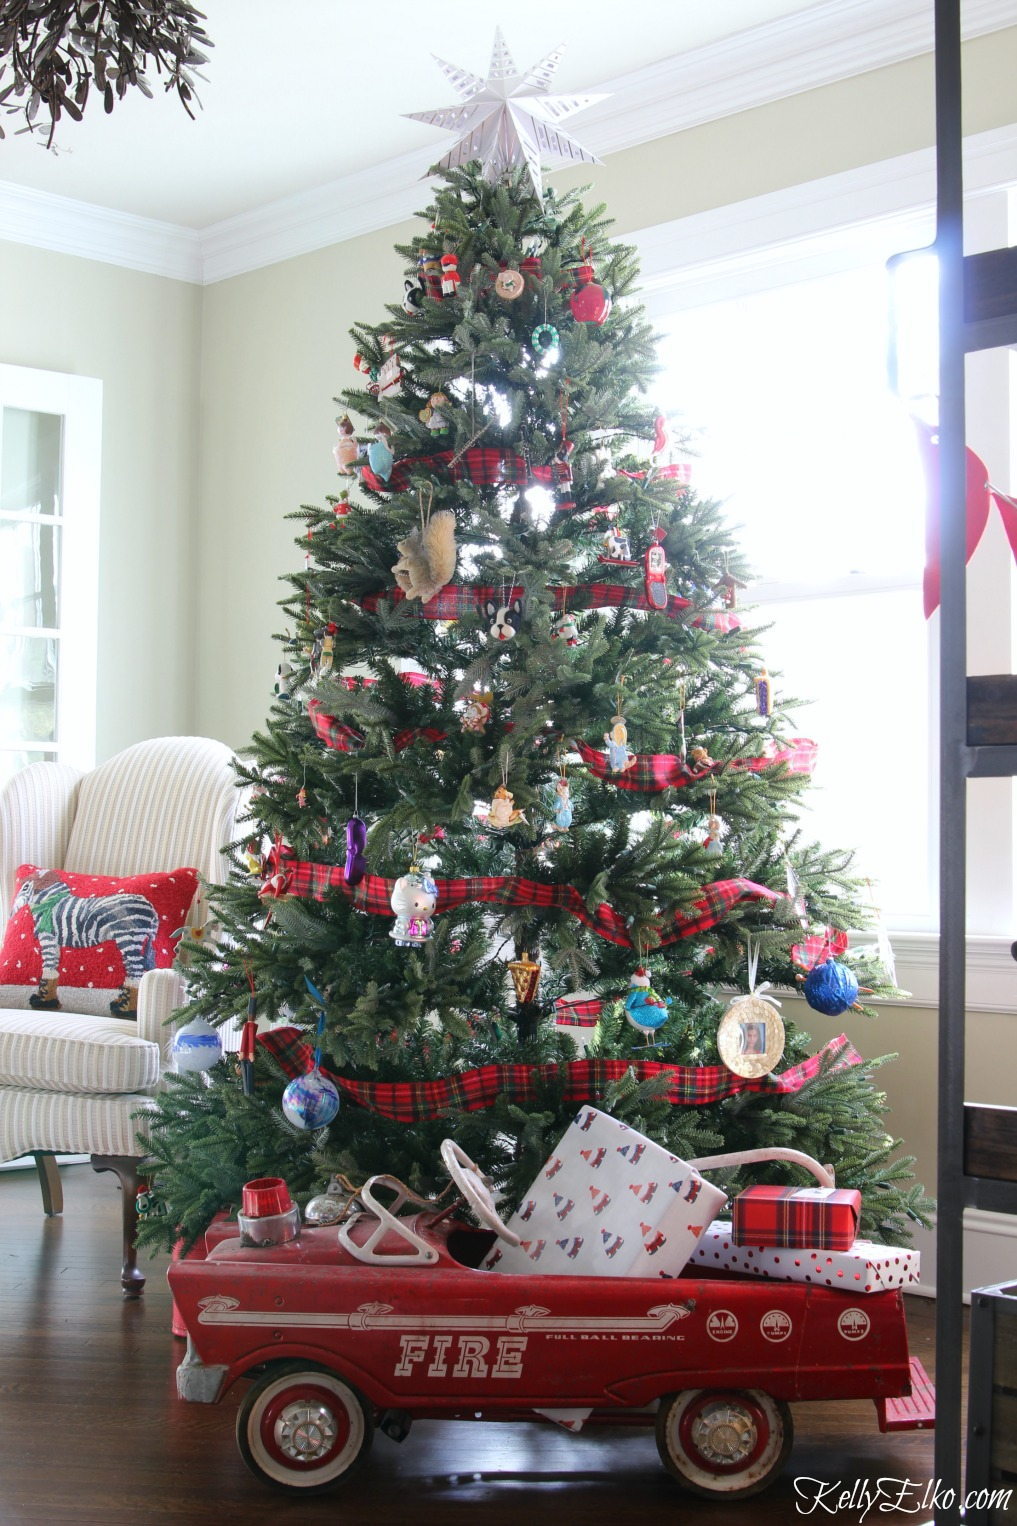 christmas in my family 25 funny christmas jokes tips & gifts  wish your friends and family a merry christmas by sending them these wry and funny  the story of online star register.